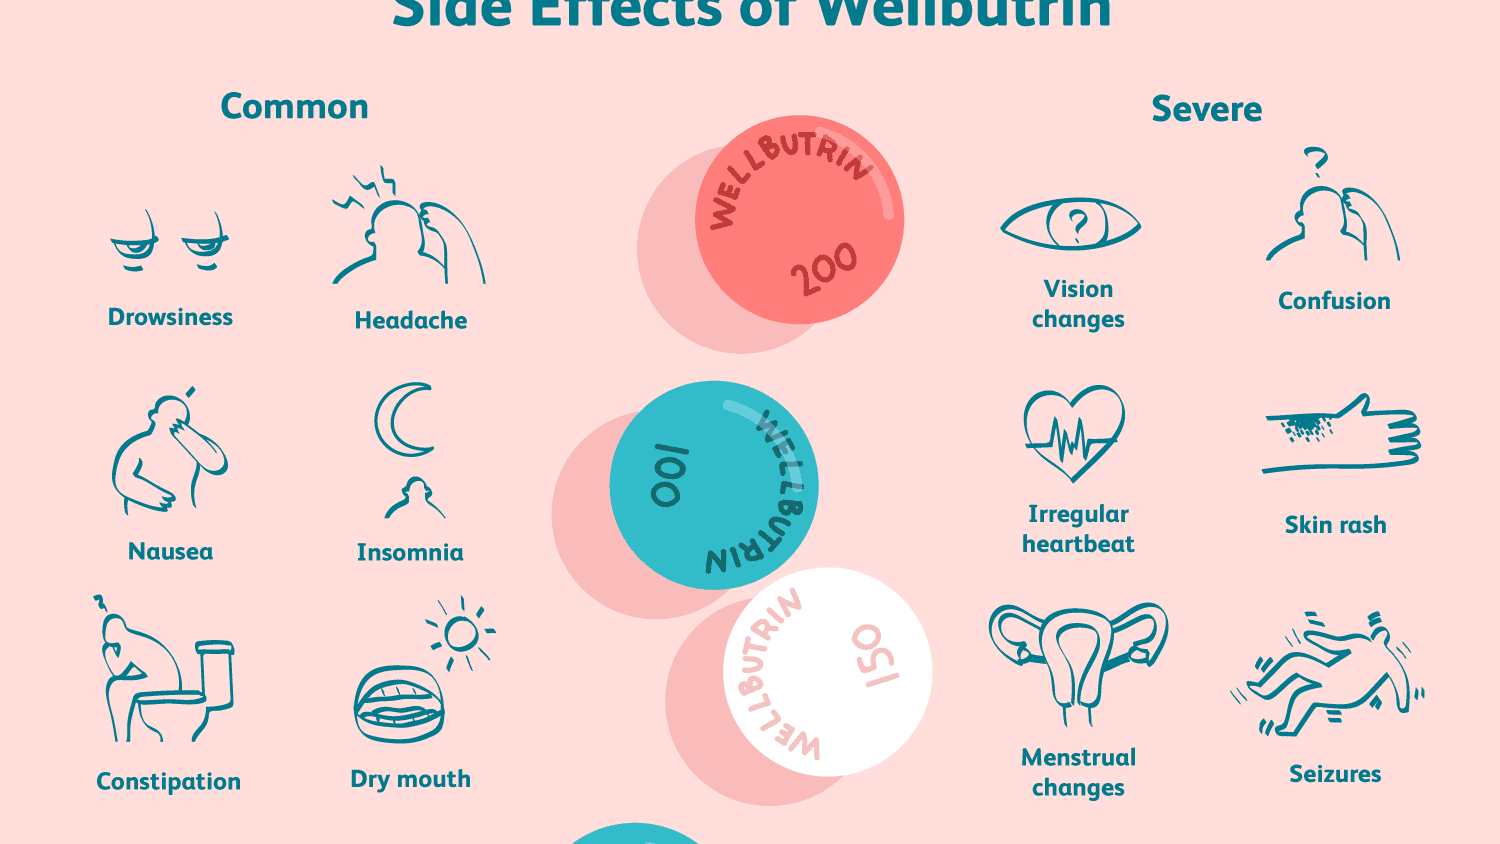 Wellbutrin (Bupropion) Side Effects